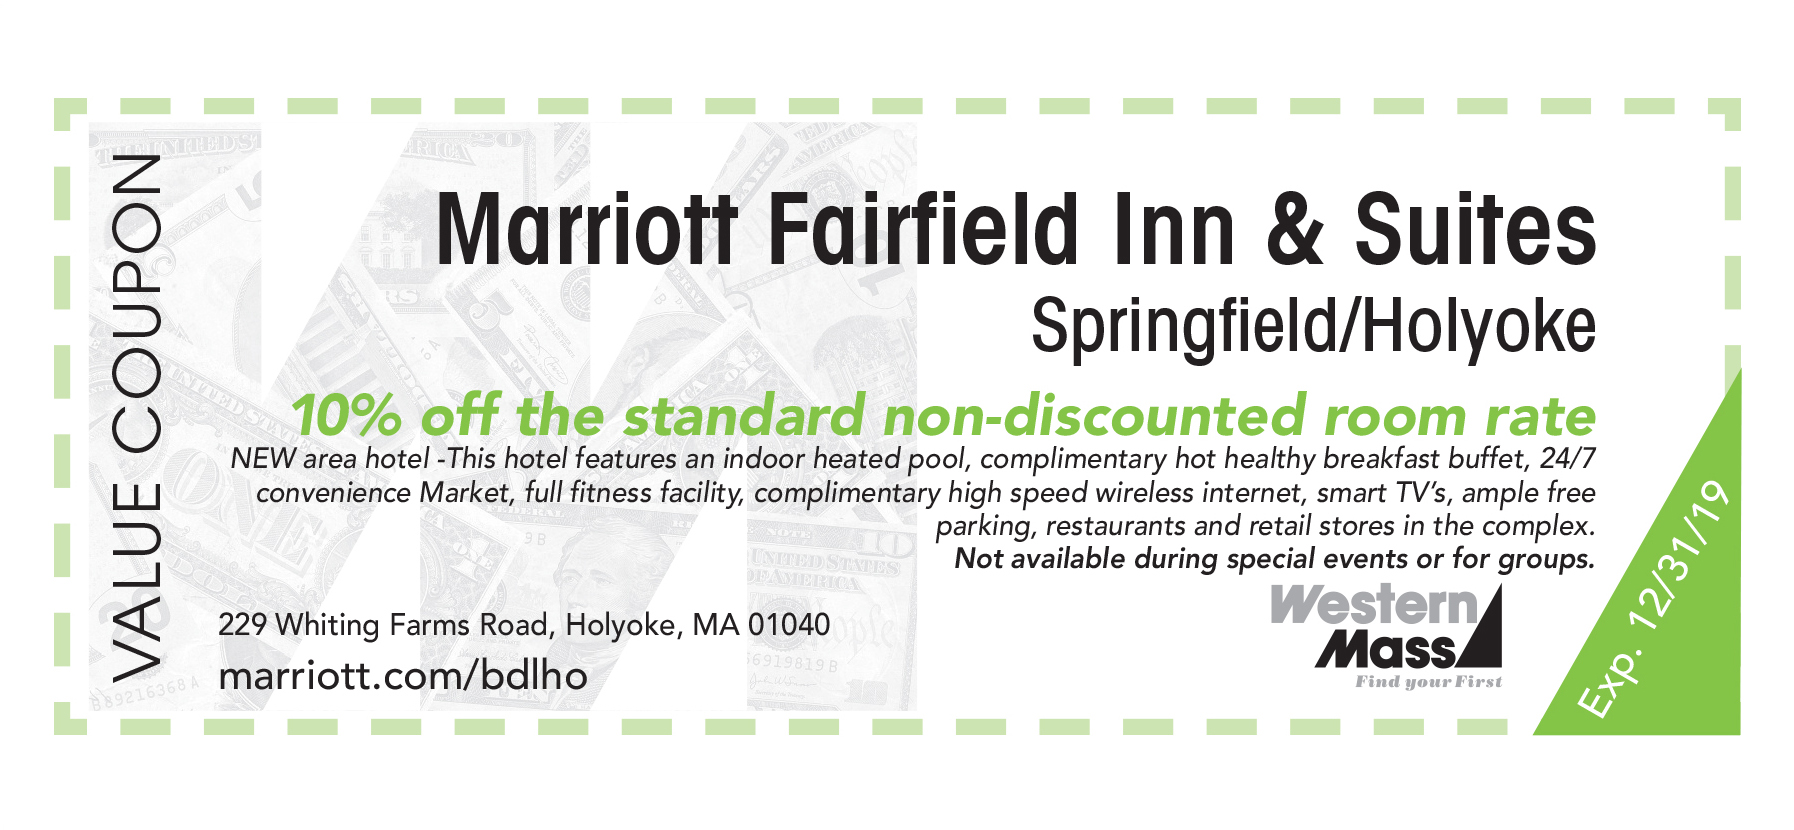 Marriott Fairfield Inn & Suites